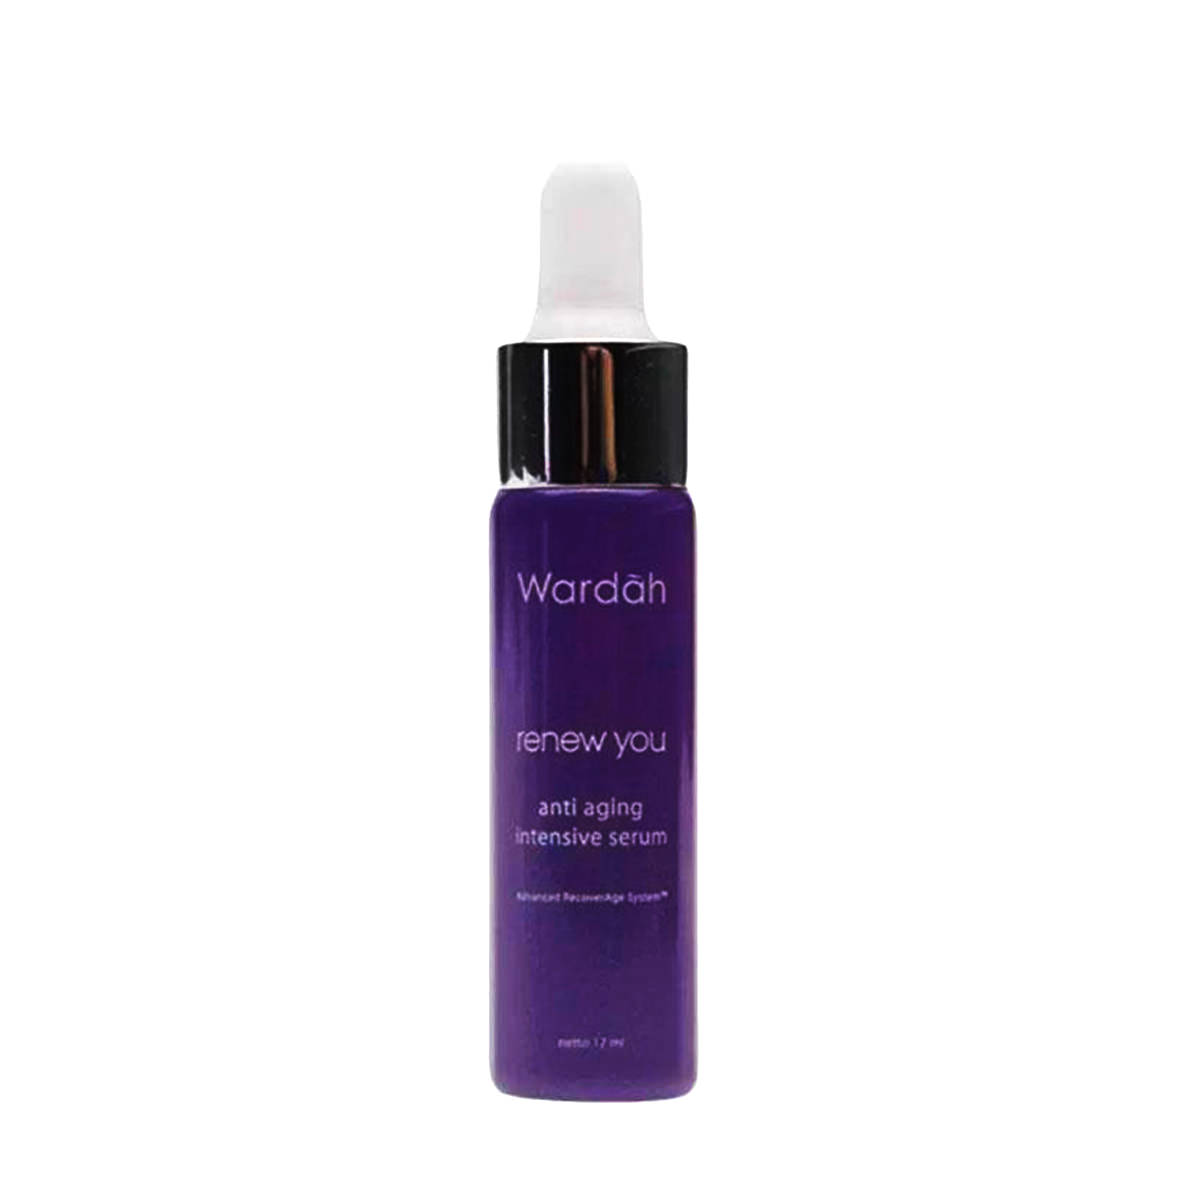 Wardah-Renew-You-Anti-Aging-Intensive-Serum-(17ml)-sfw(2)